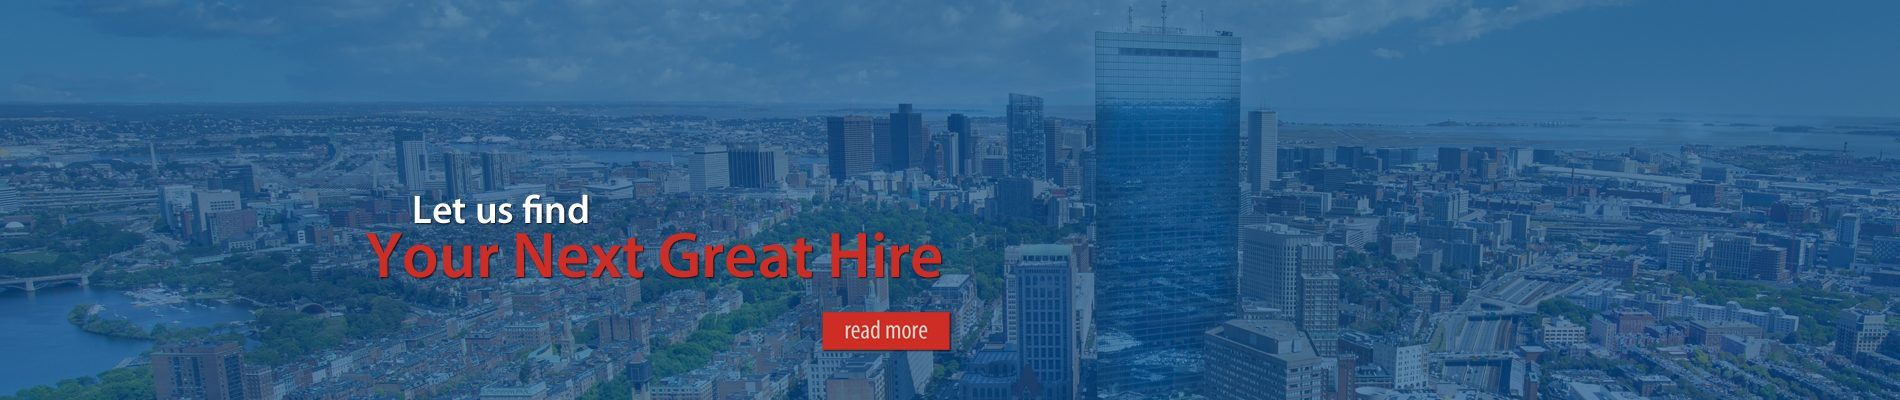 Let us Find Your Next Great Hire